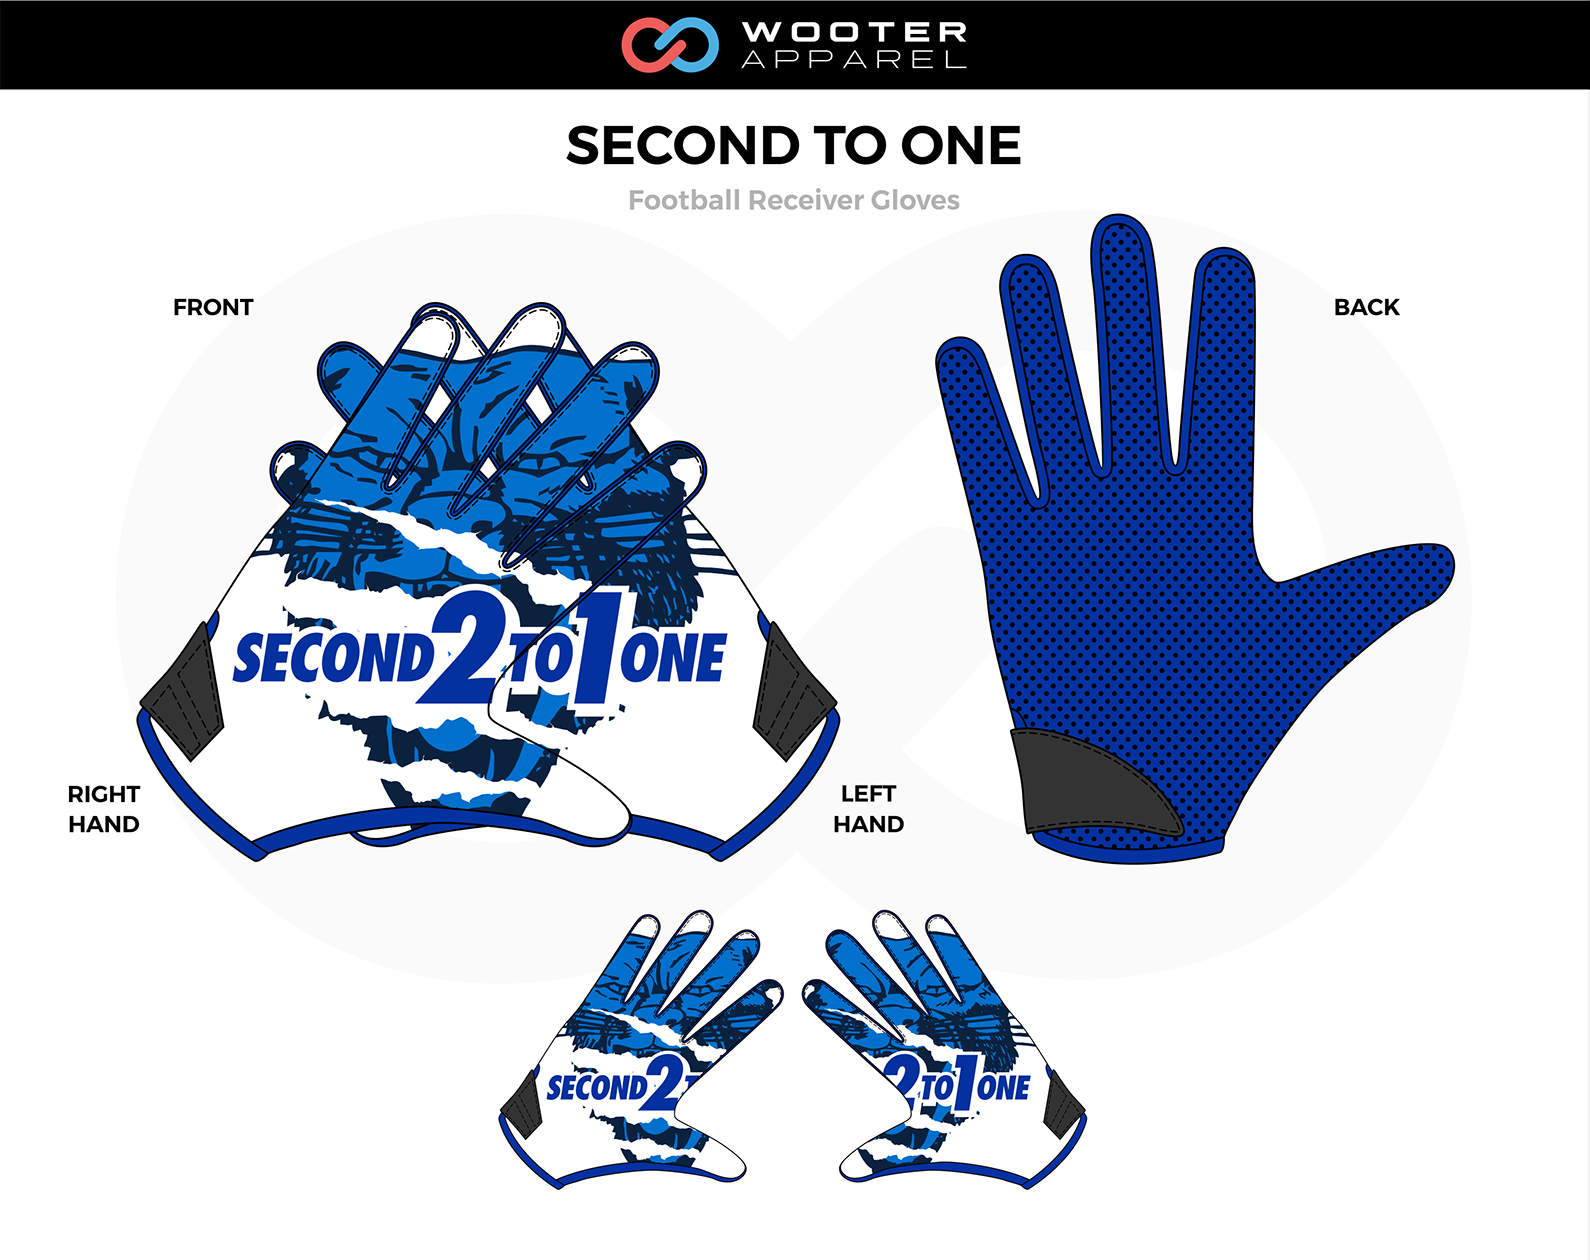 02_Second to One Football Glove.png